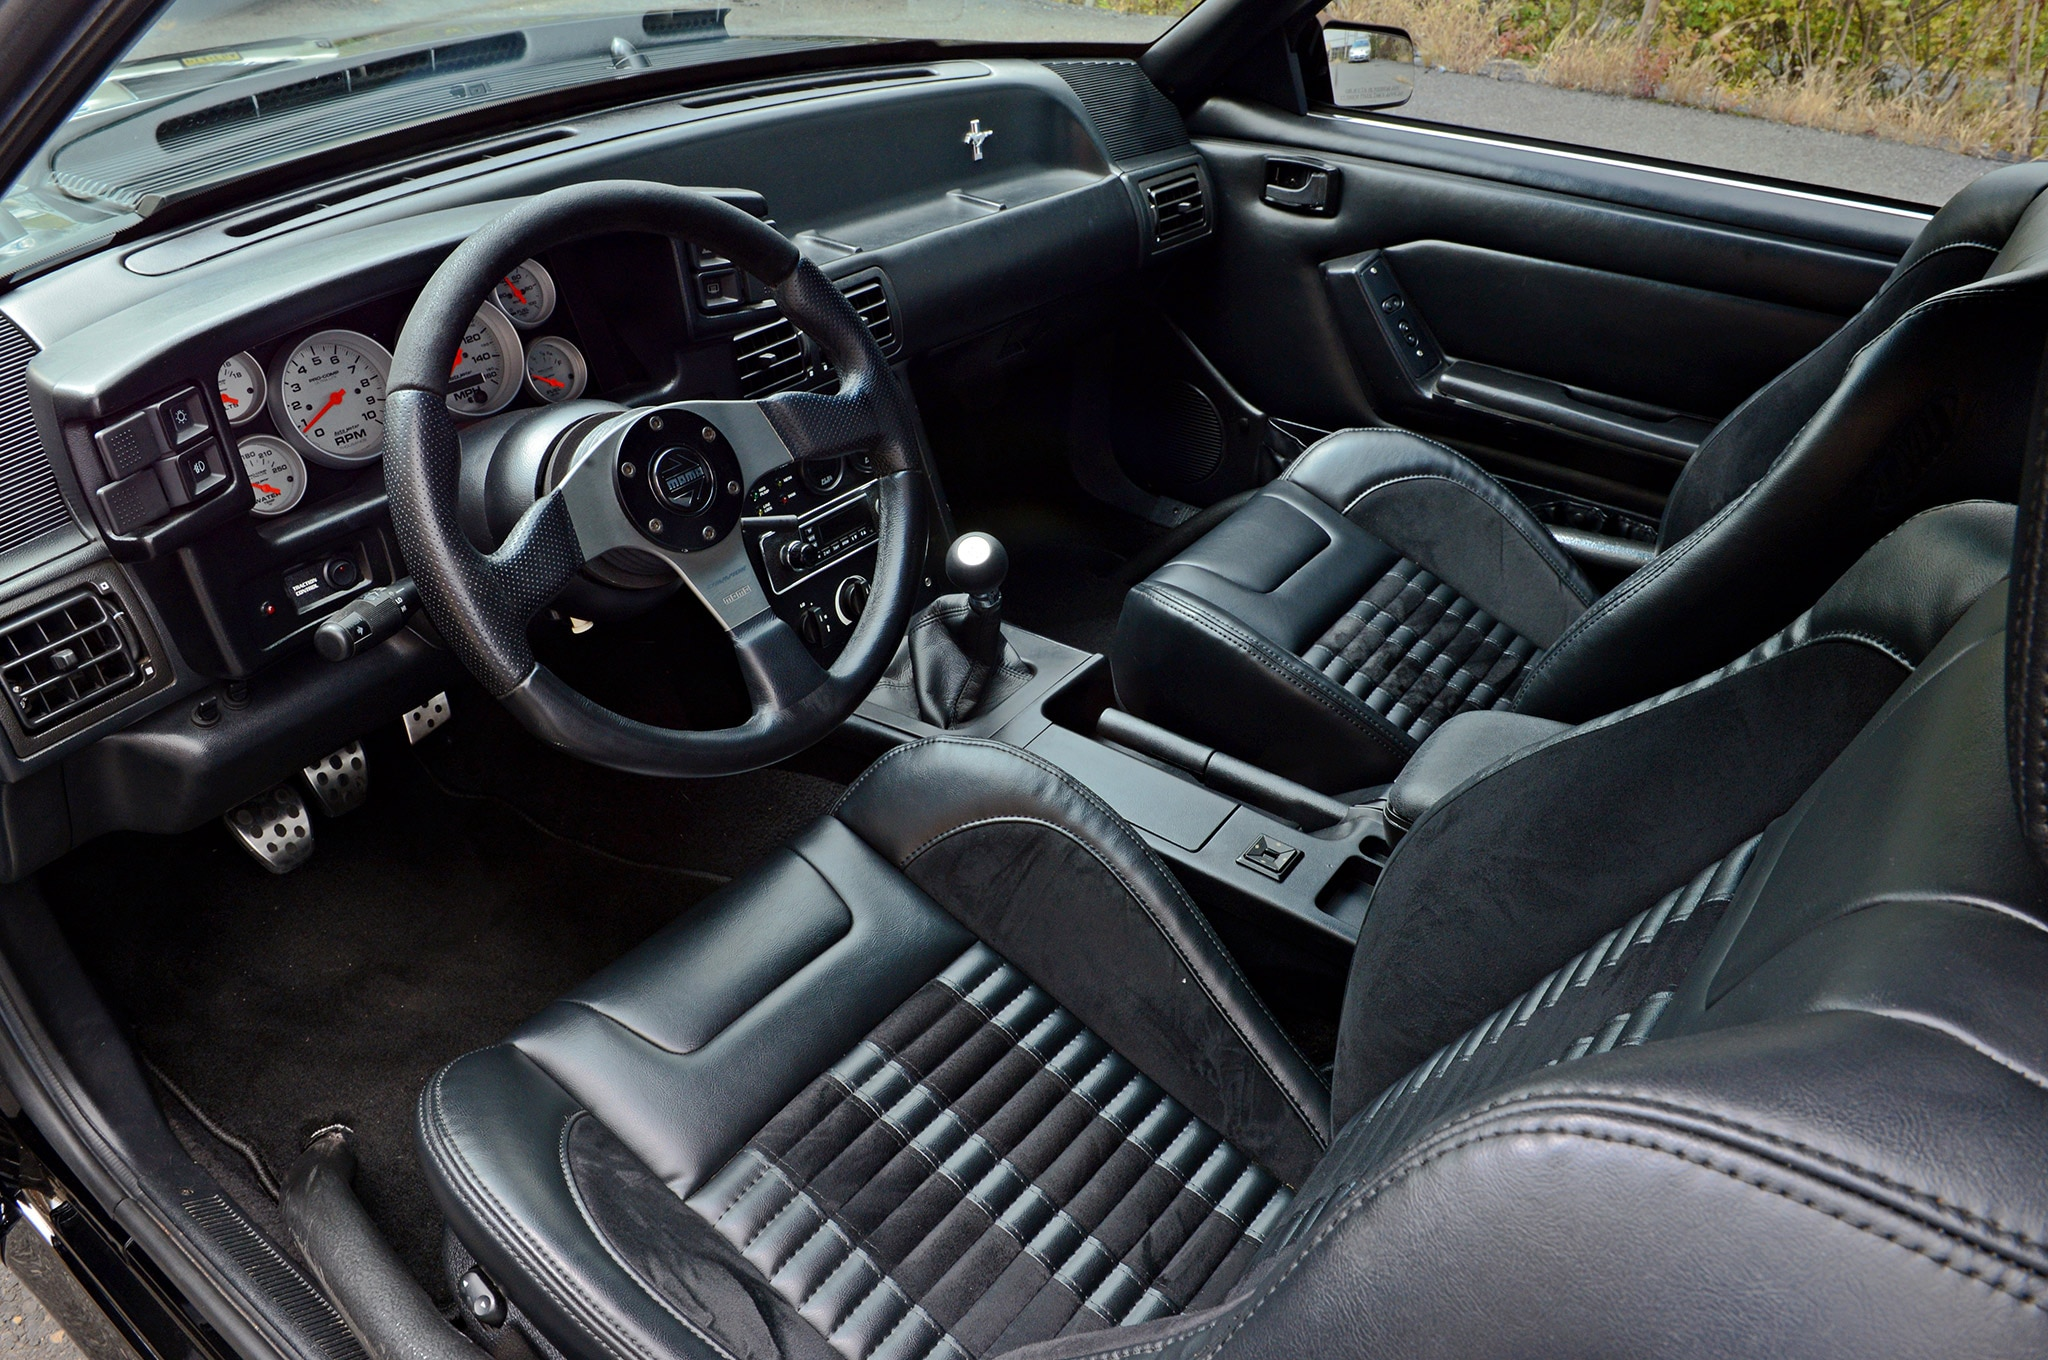 1988 Ford Mustang Gt Hartrick 88 Interior